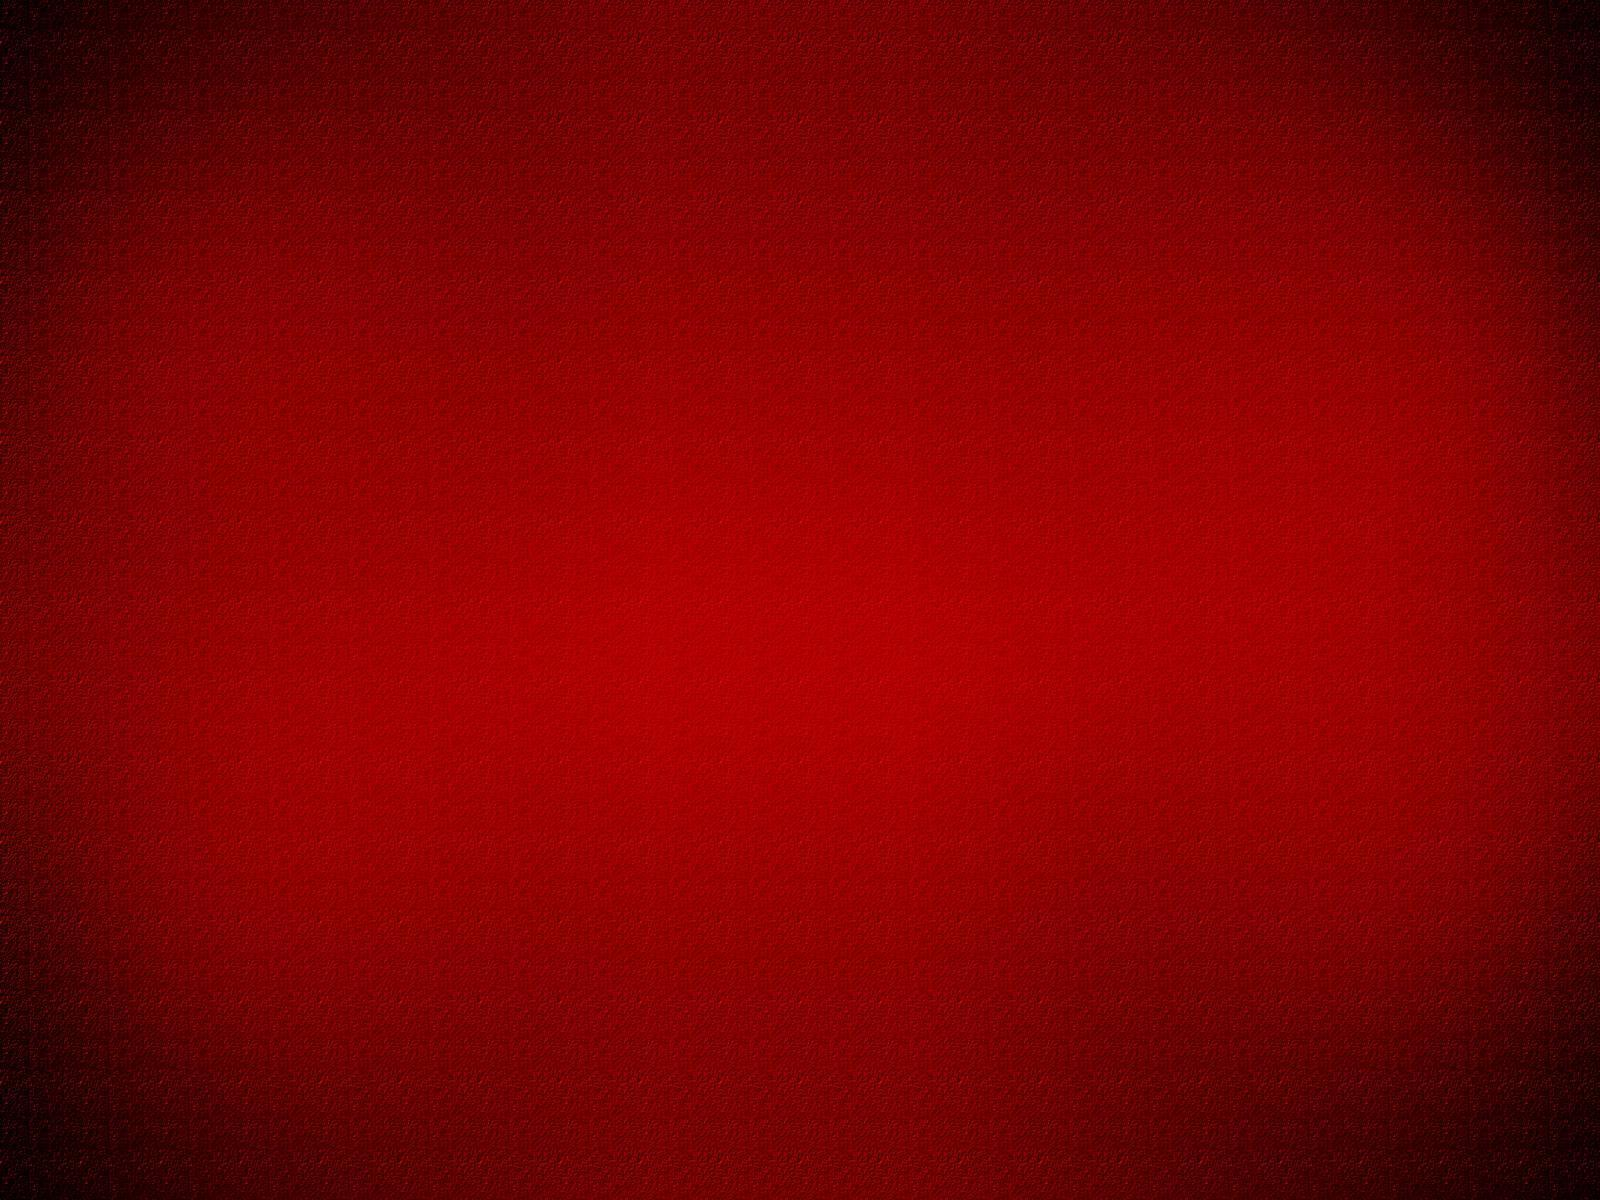 planetscapes backgrounds red - photo #10